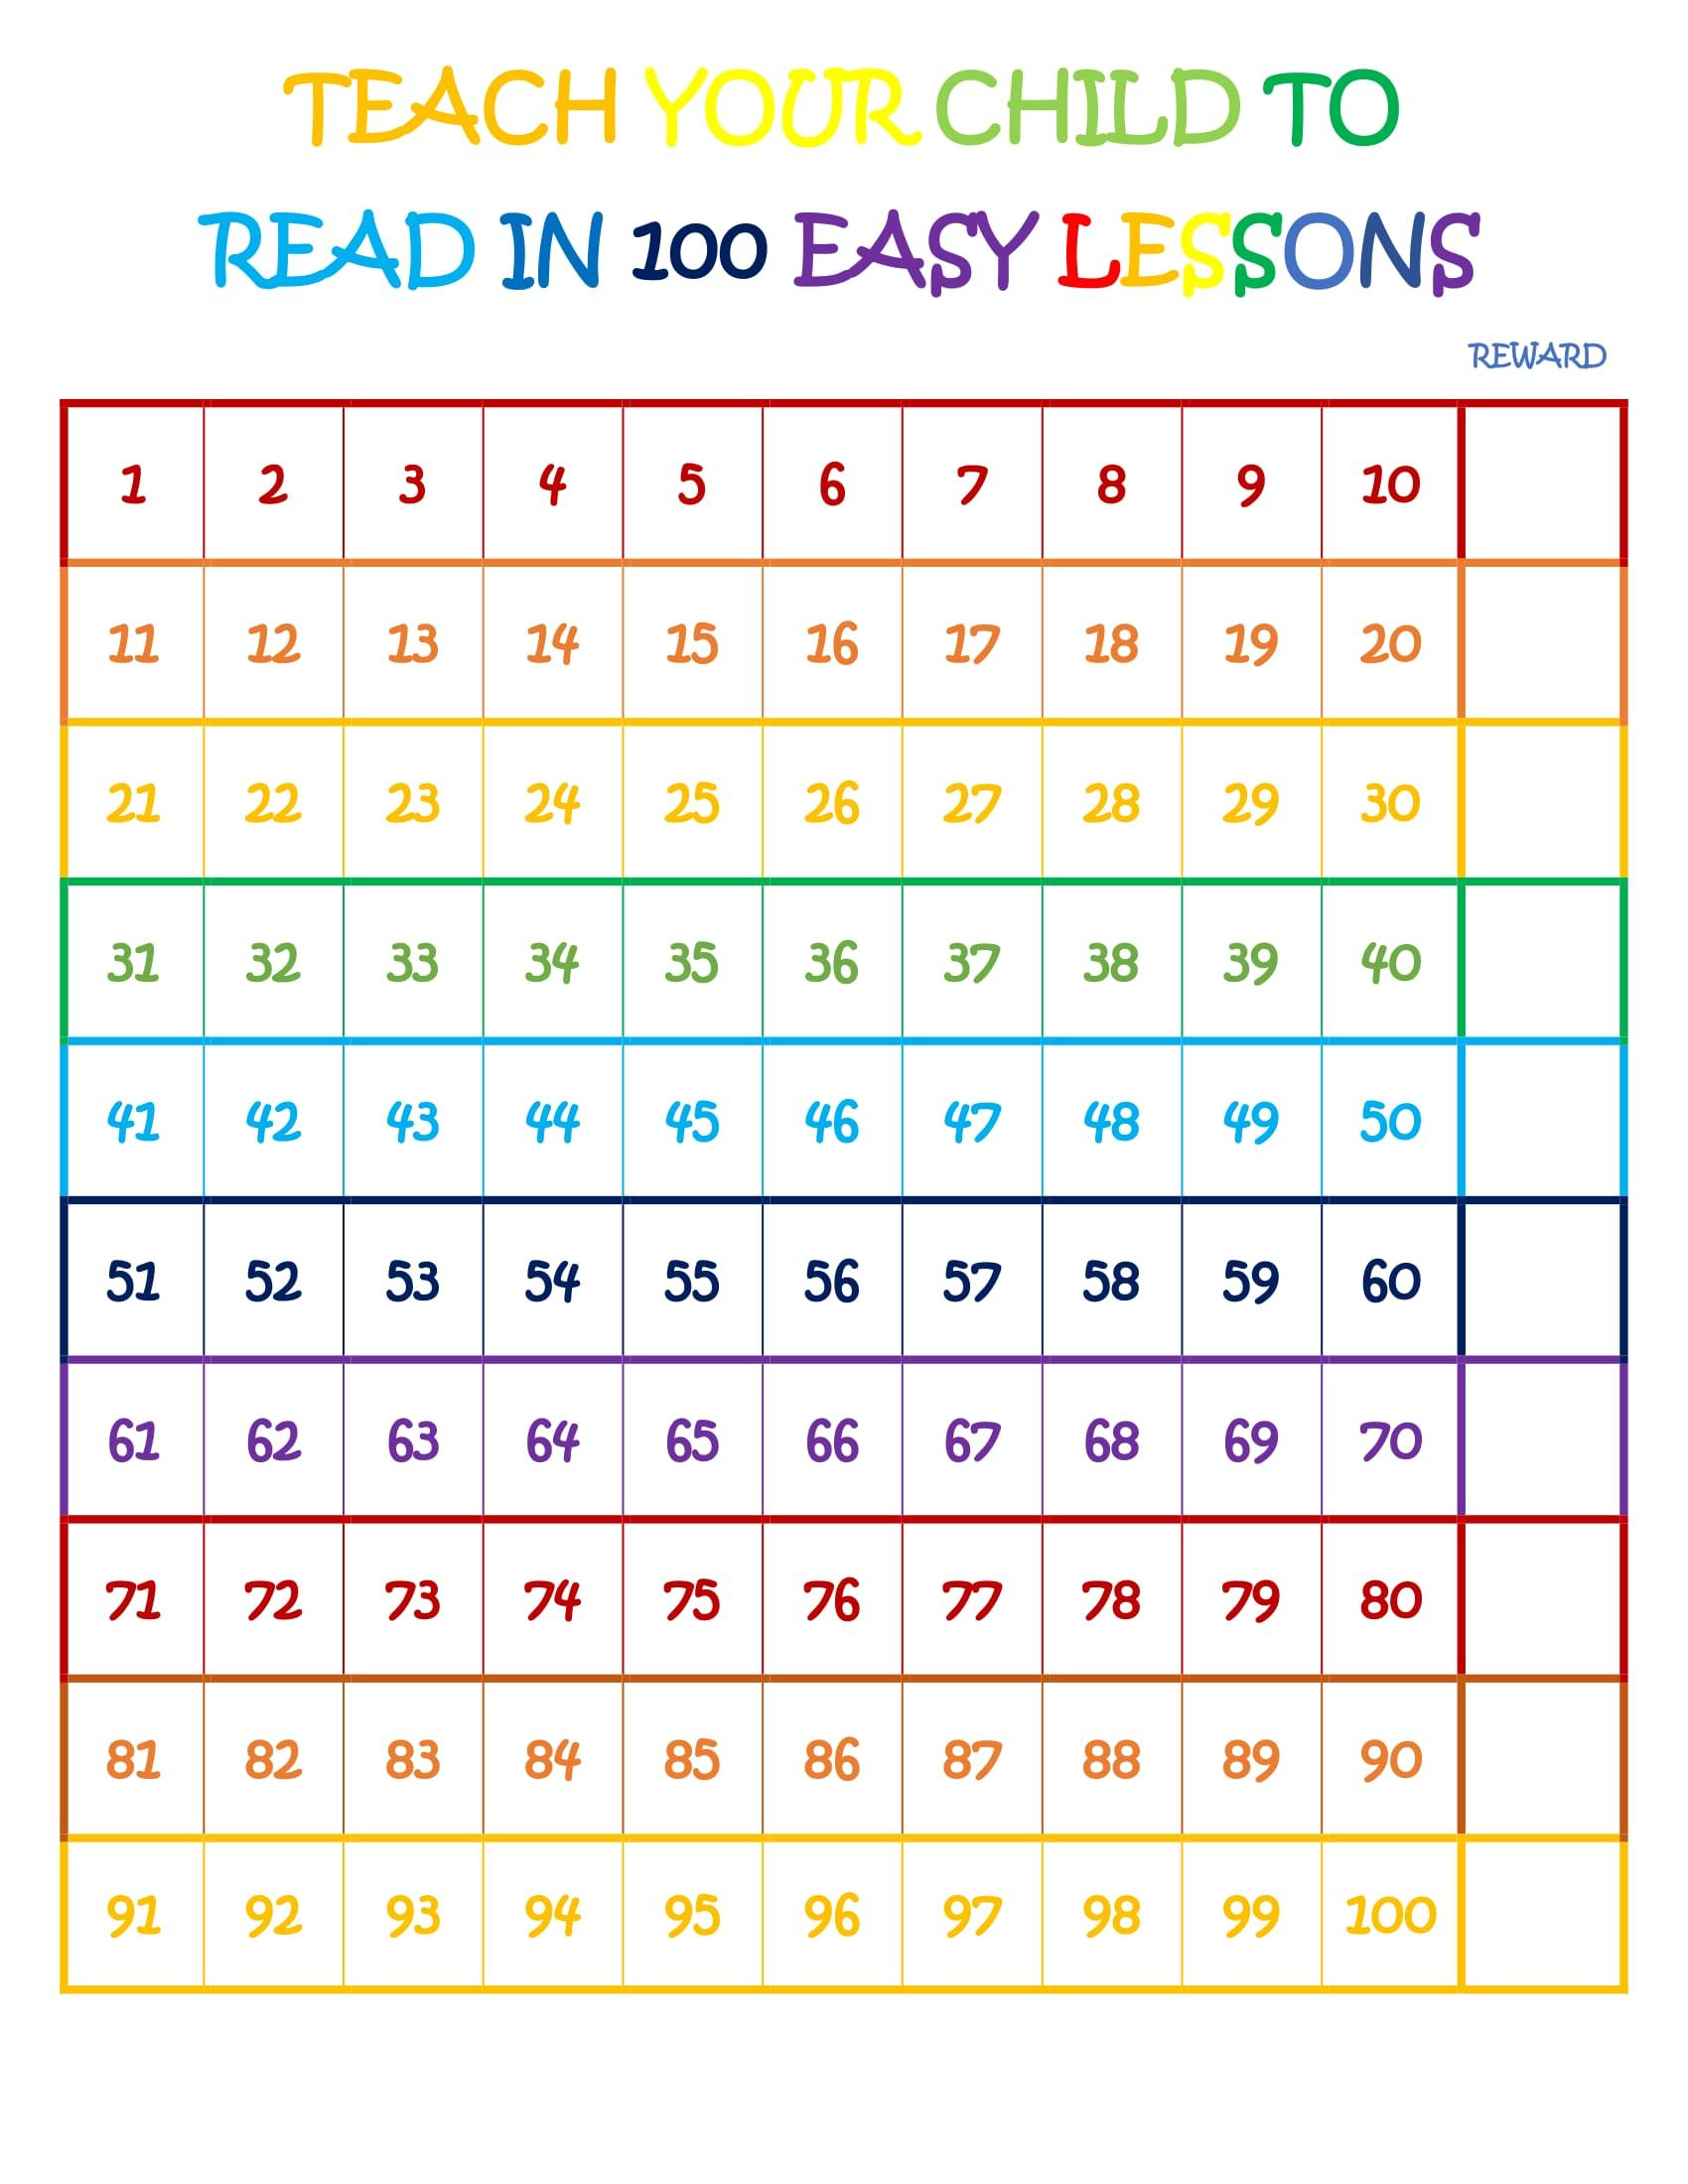 Lesson Completion Chart For Teach Your Child To Read In